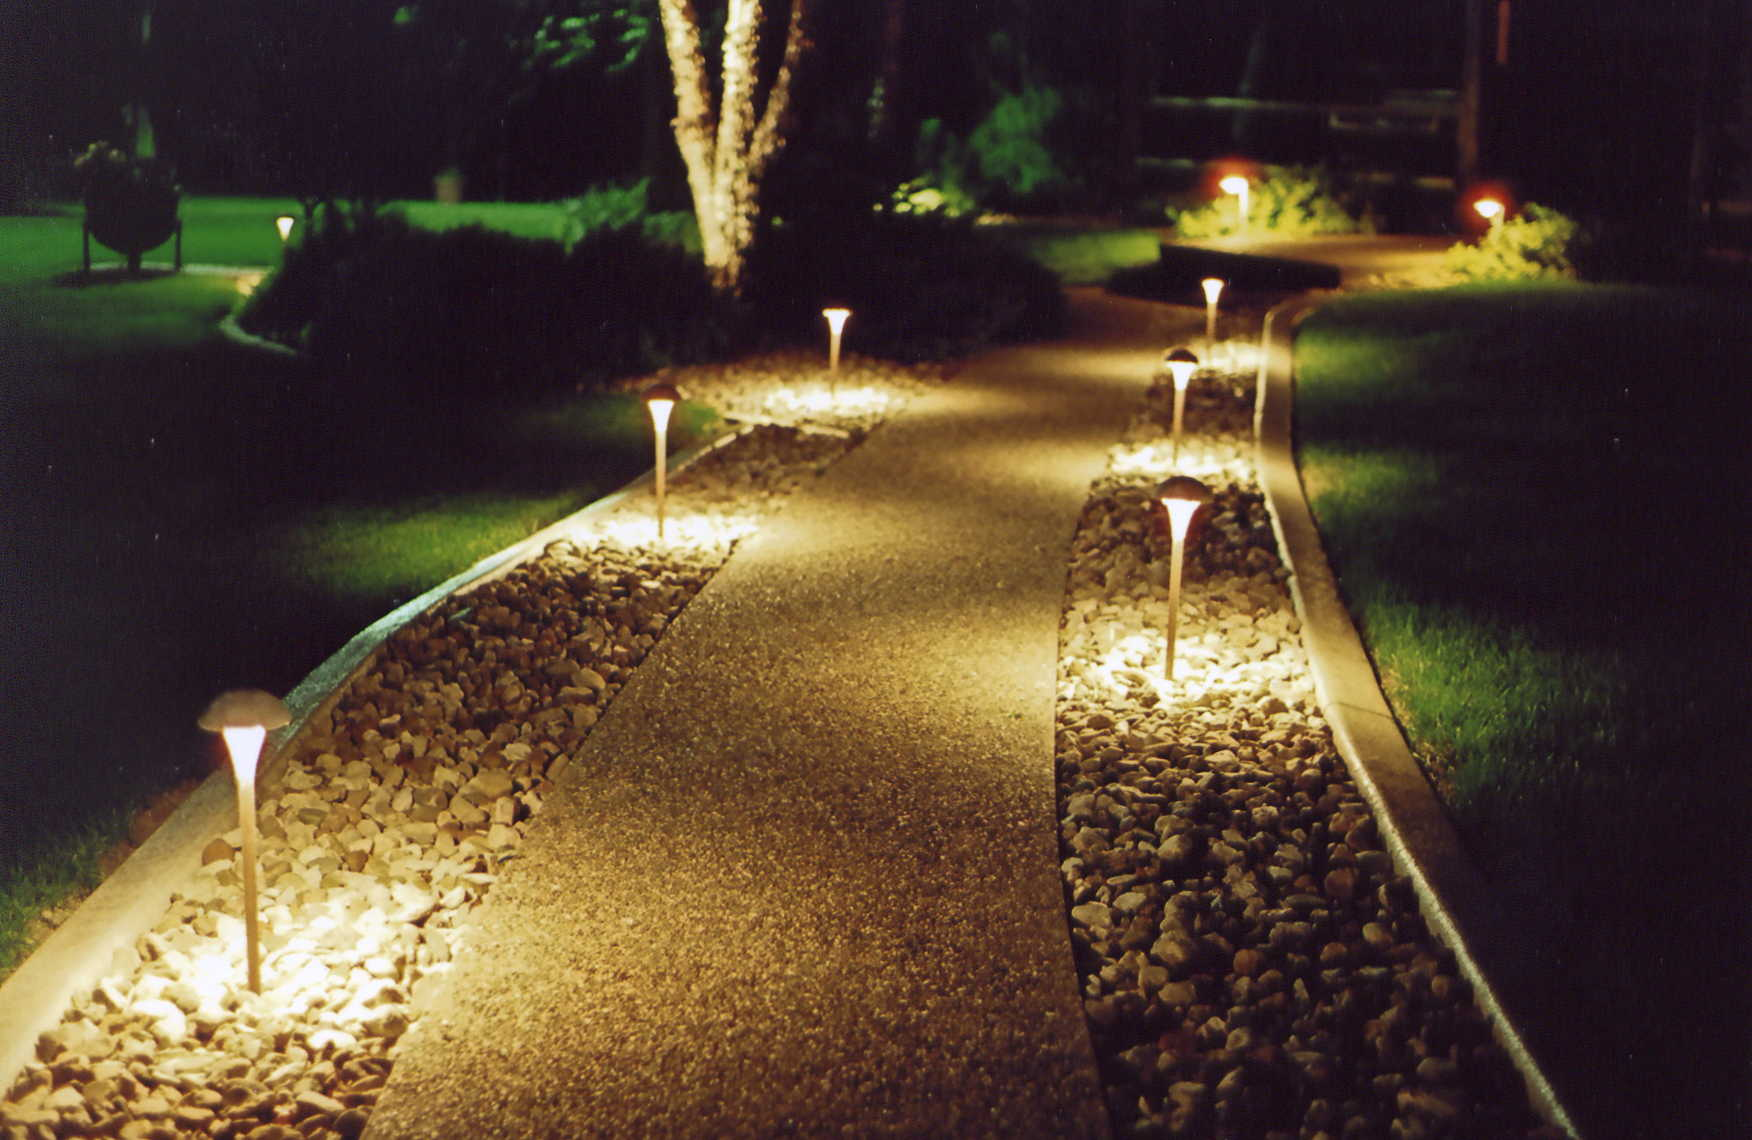 Path and Garden lighting-Bradenton FL Outdoor Lighting Installers-We Offer Outdoor Lighting Services, Landscape Lighting, Low Voltage Lighting, Outdoor LED landscape Lighting, Holiday Lighting, Christmas Lighting, Tree Lighting, Canopy Lighting, Residential outdoor Lighting, Commercial outdoor Lighting, Safety Lighting, Path and Garden Lighting, Mini lights and flood lights, Landscape Lighting installation, Outdoor spot lights, Outdoor LED garden Lighting, Dock Lighting, Accent lights, Deck and patio lights, Security lights, Underwater Lighting, Tree upLighting, Outdoor Lighting repair services, and more.